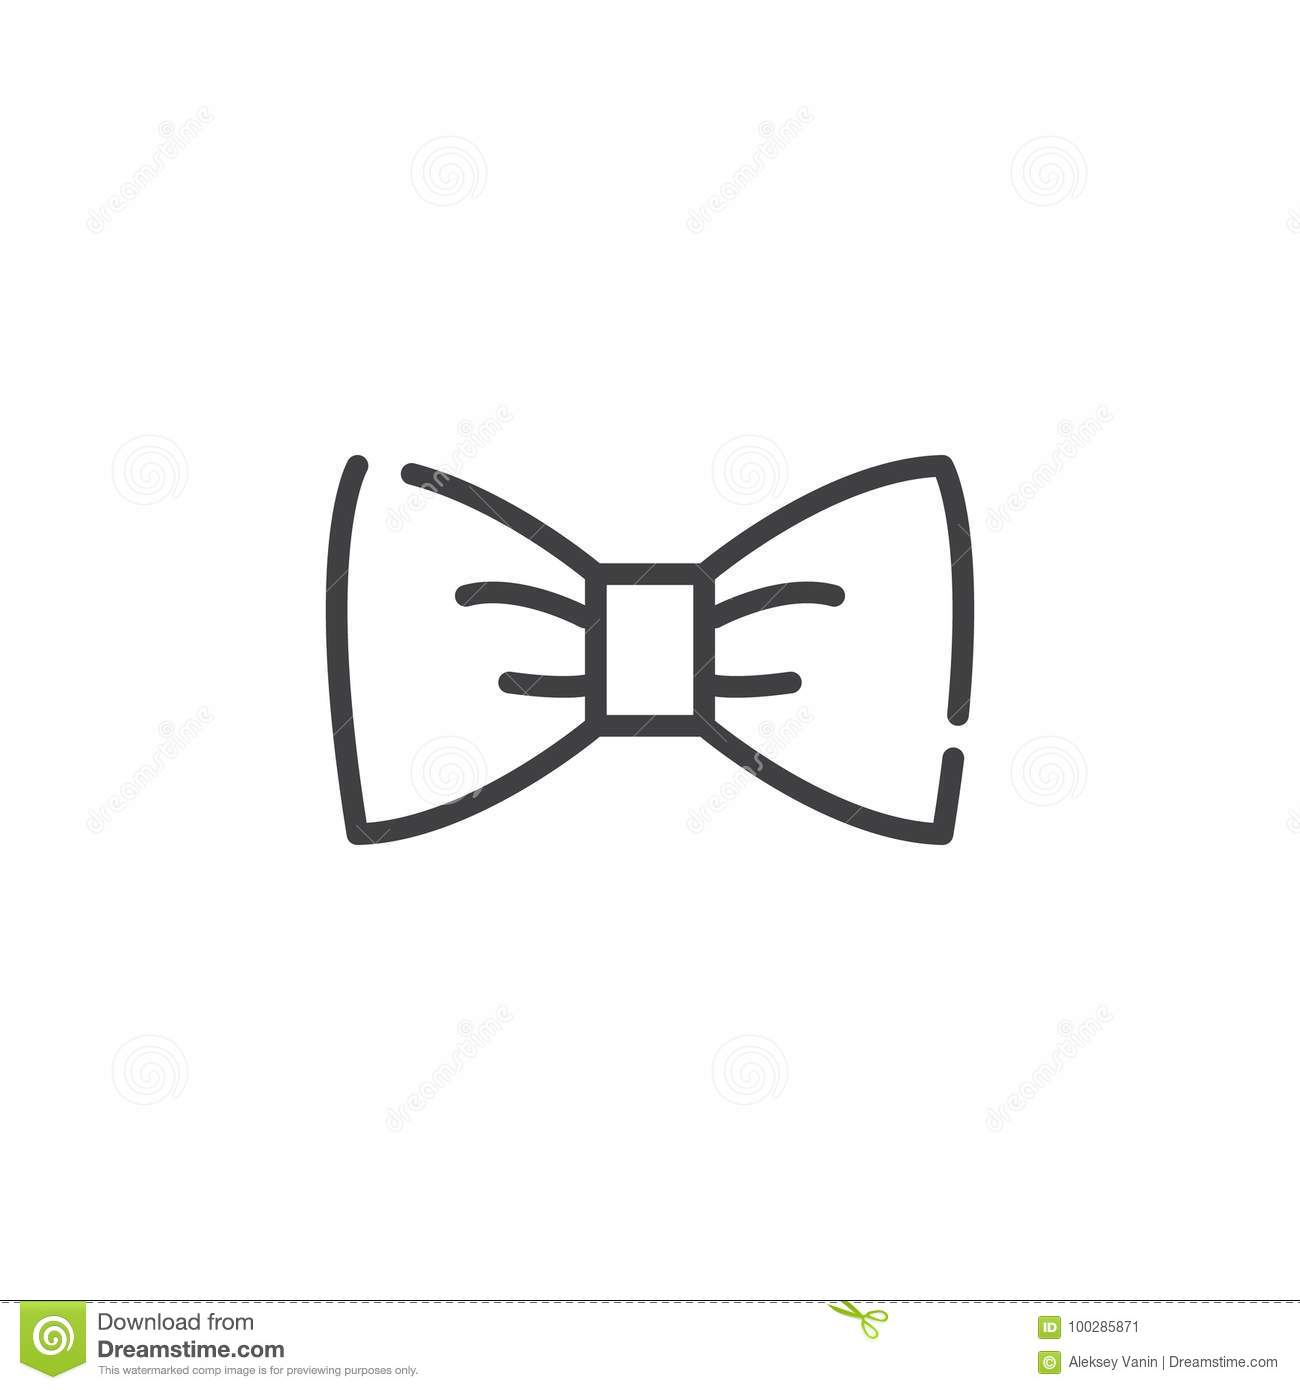 Bow Tie Line Icon Stock Vector Illustration Of Classic 100285871